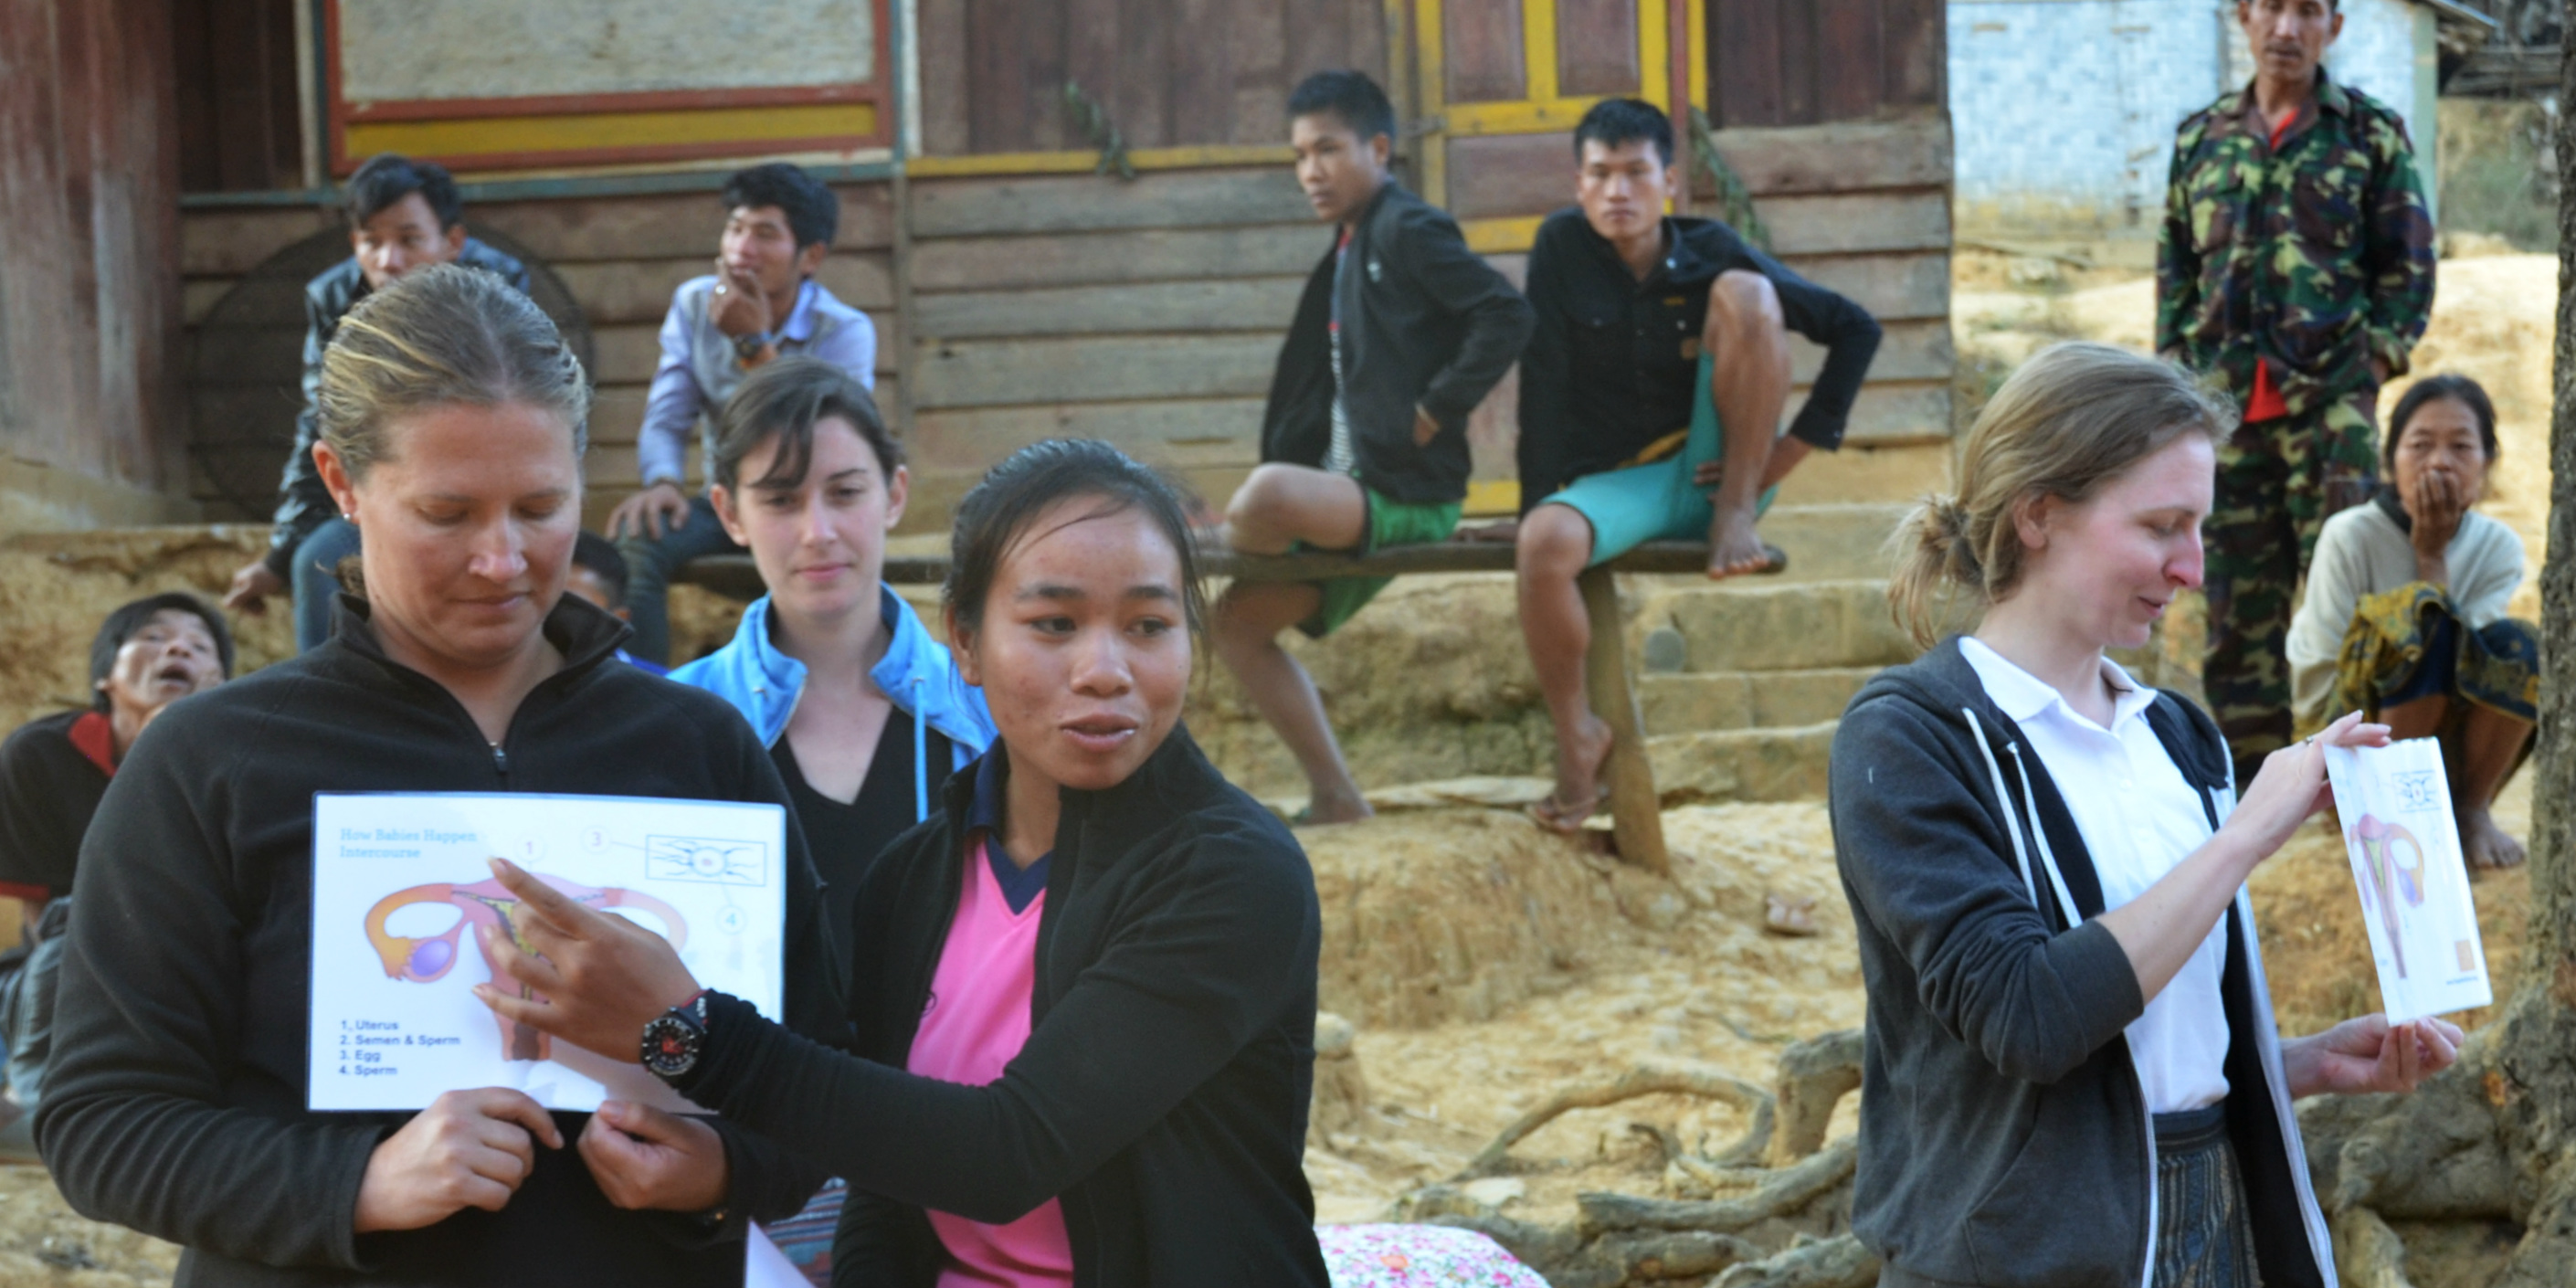 A Laos woman leads a menstrual health awareness workshop in a rural village, as part of community development in the region.